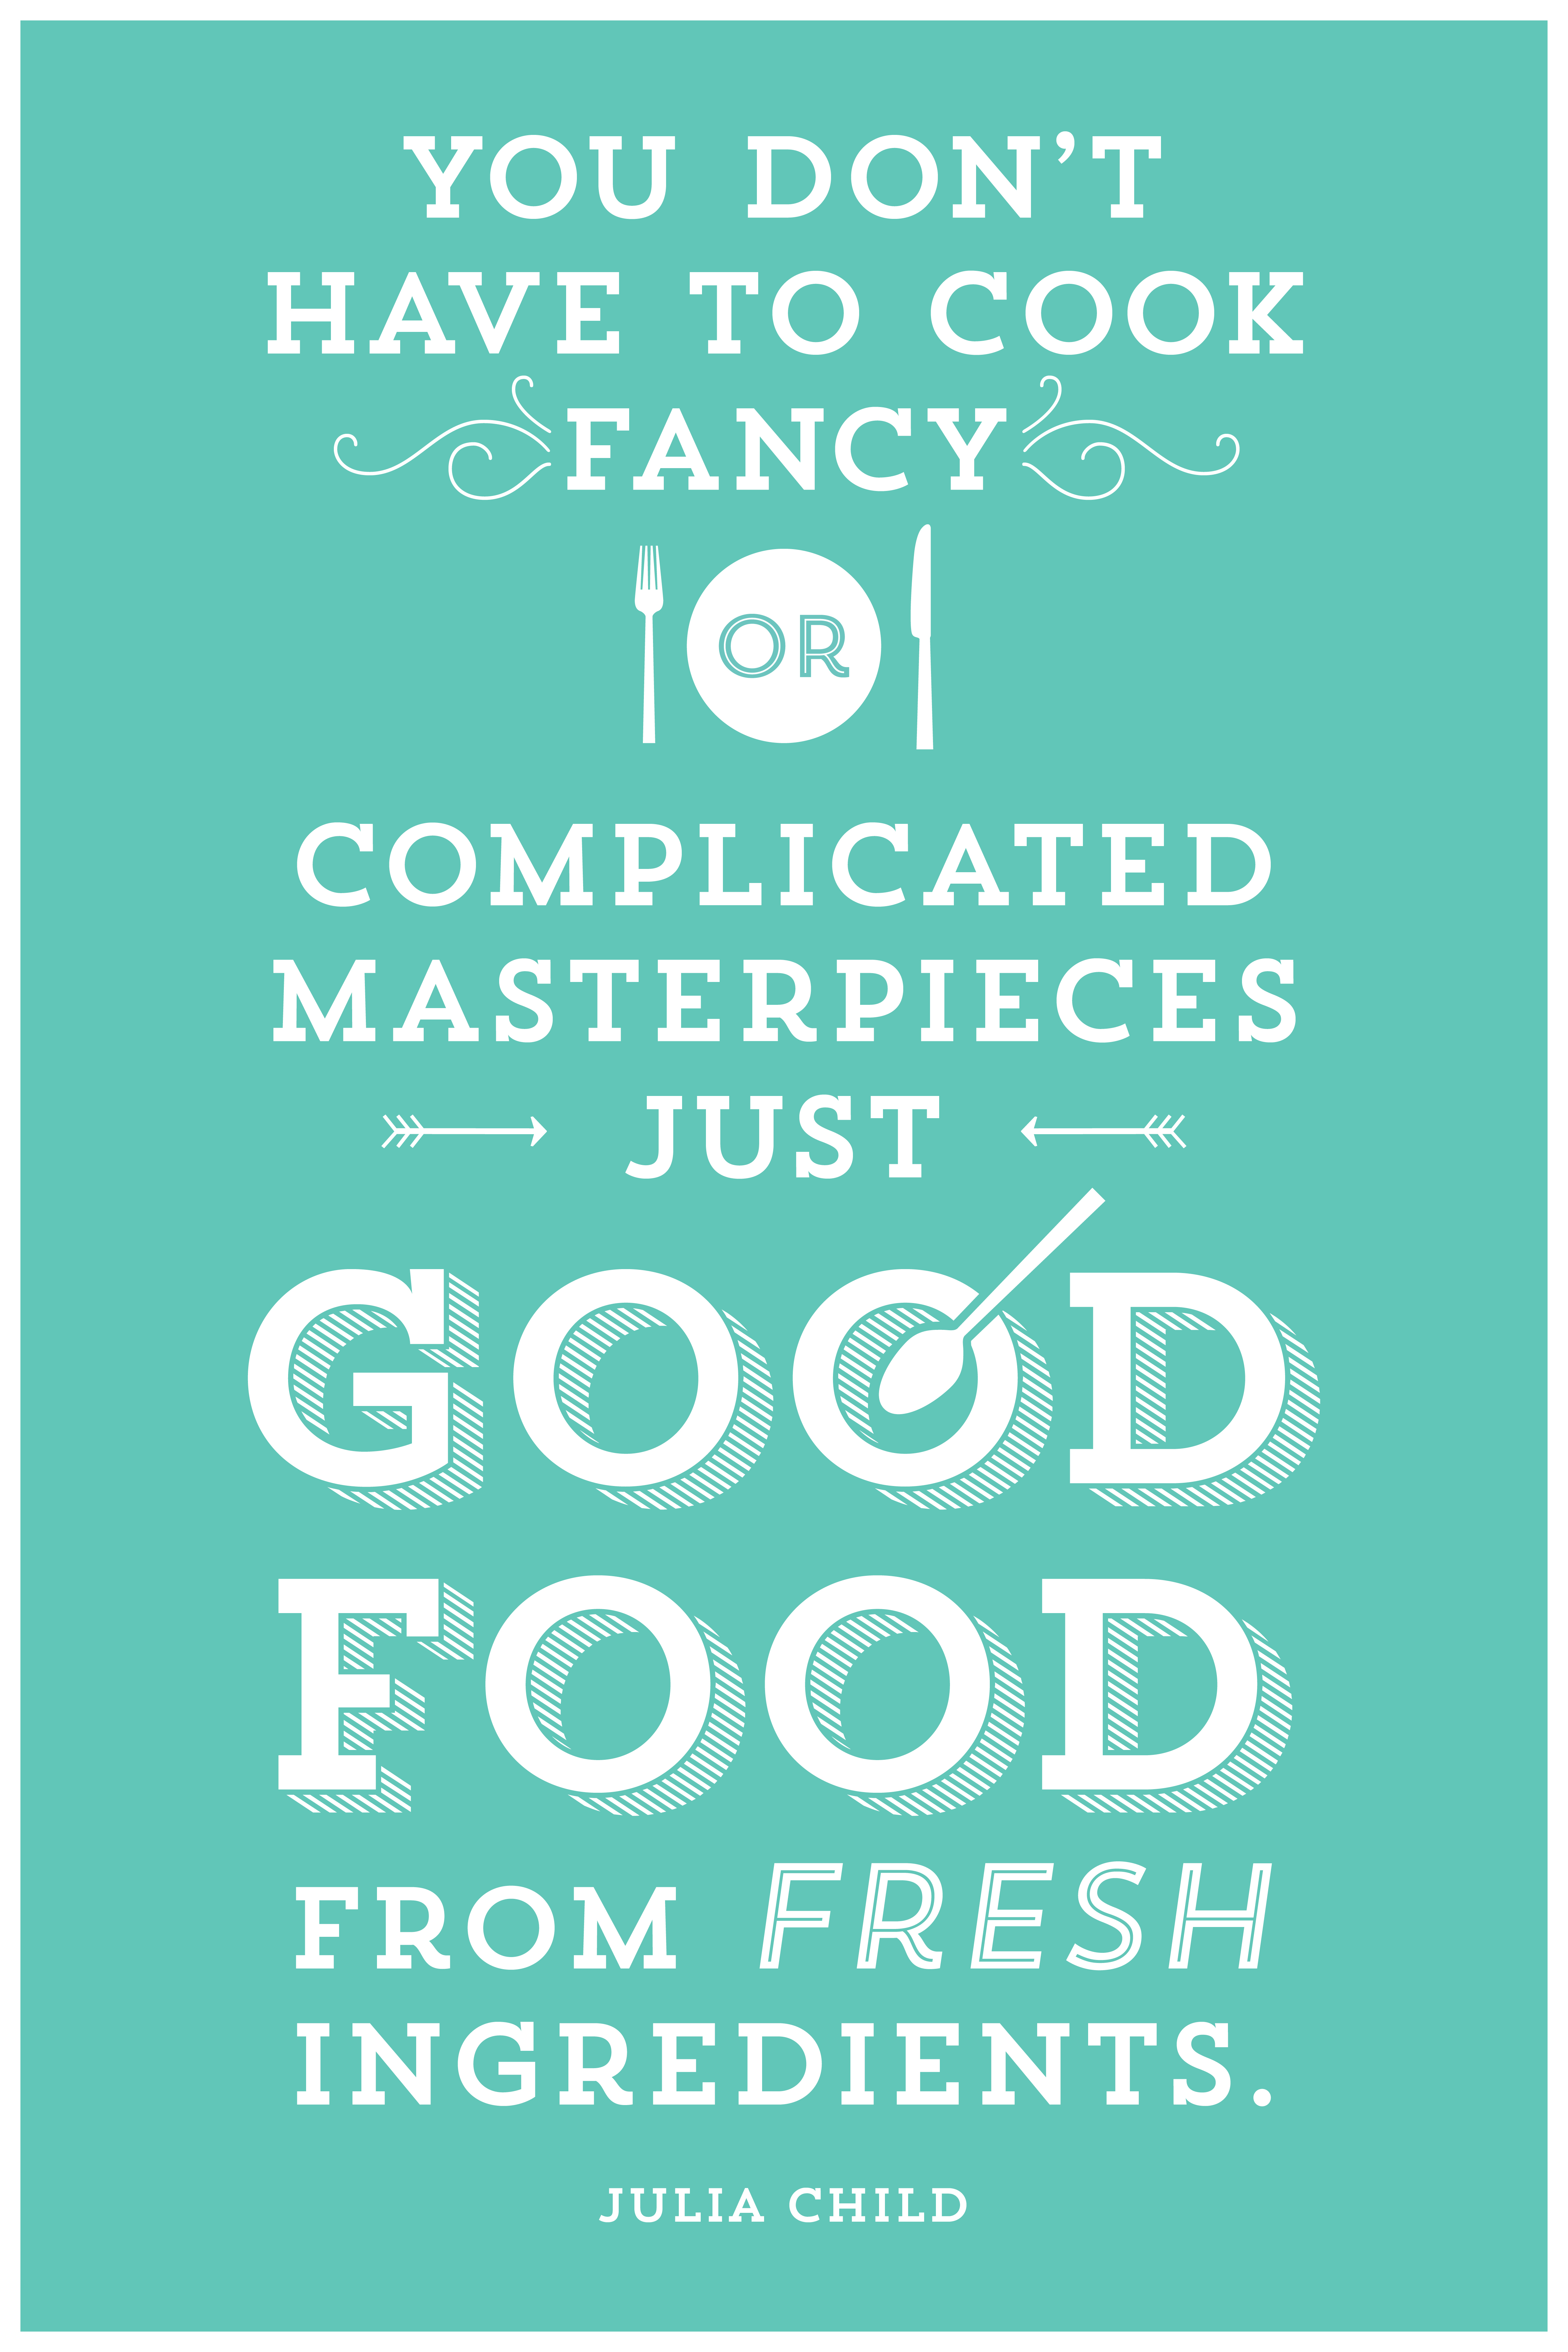 Quotes About Restaurants Food 72 Quotes